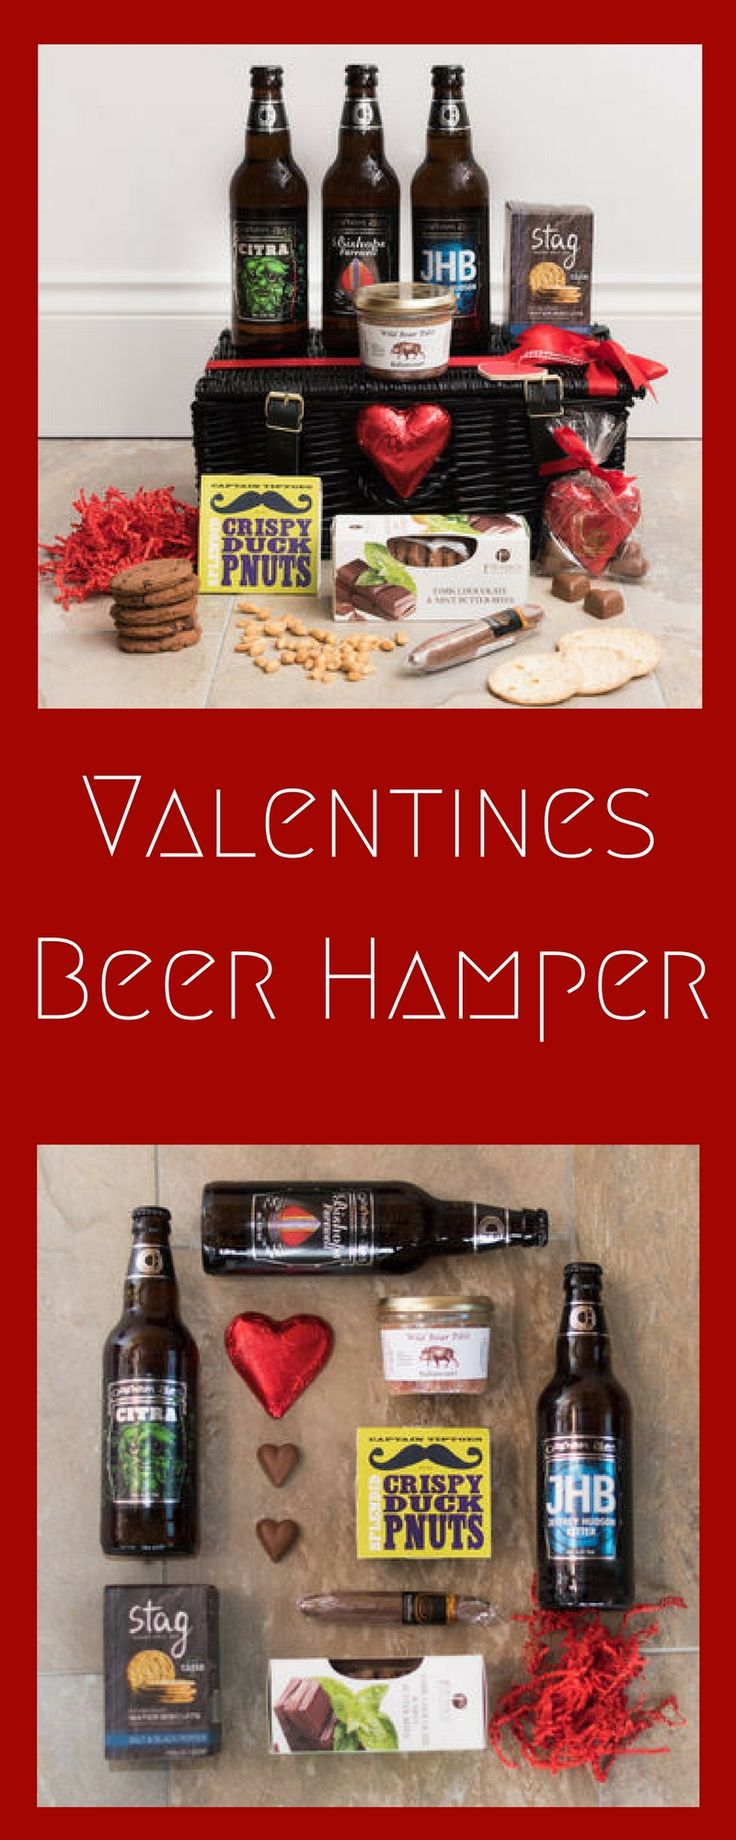 A romantic, artisan Beer and Treats Manper® just for him with irresistible ales, scrumptious treats and chocolates all hand-packed in a black wicker hamper. #ad #commissionlink #valentinesday #valentine #valentinesdaygiftideas #